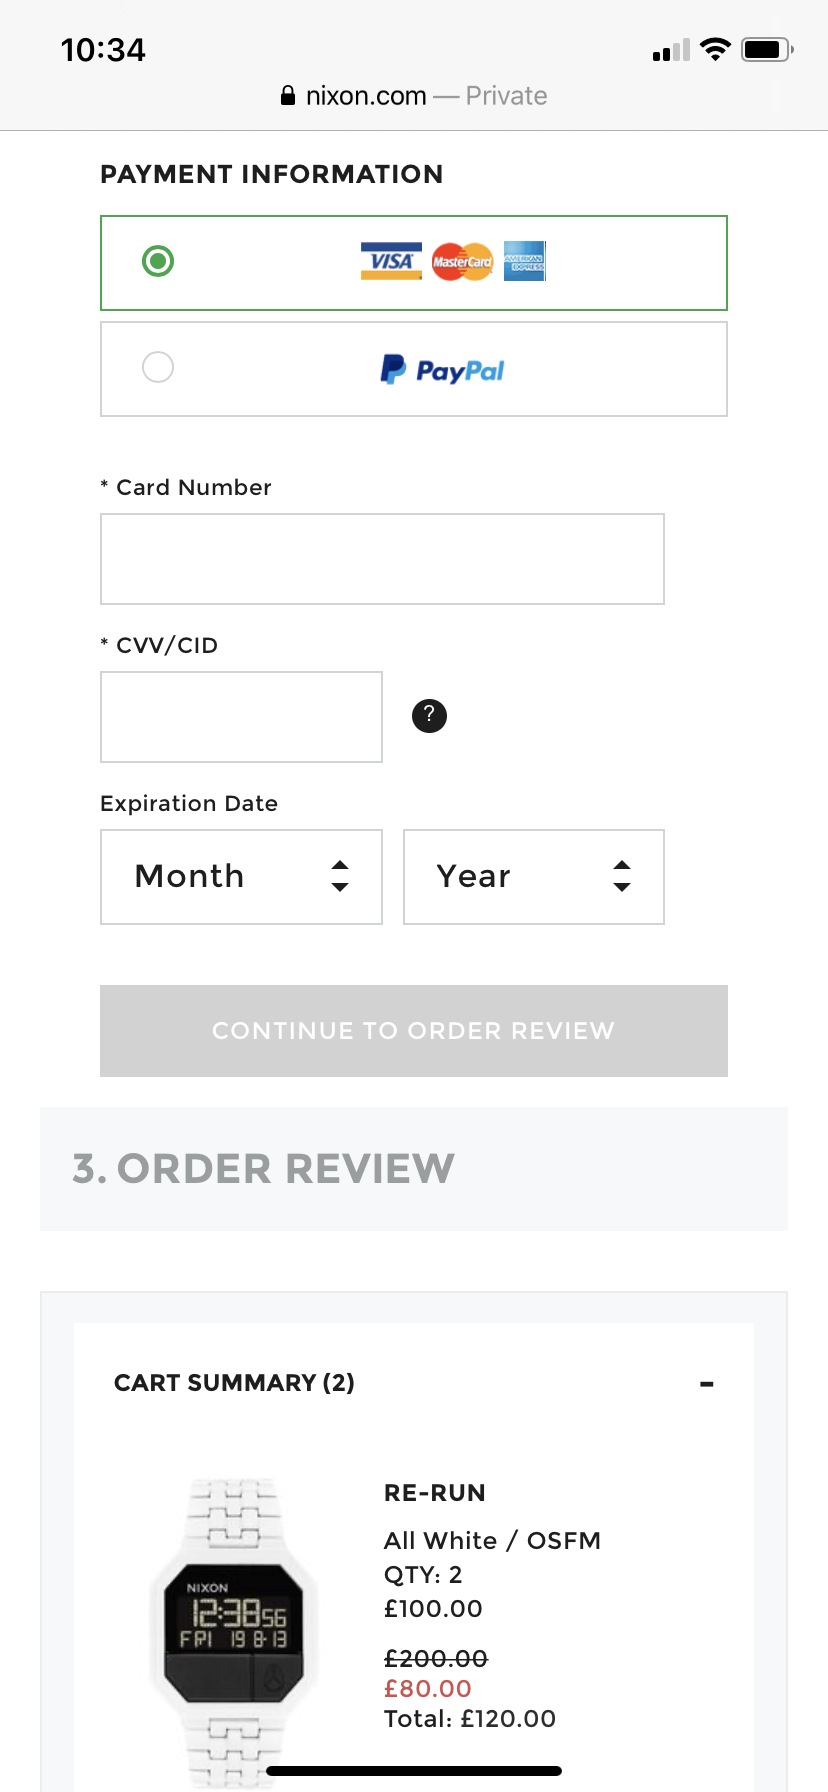 visually appealing mobile form design example